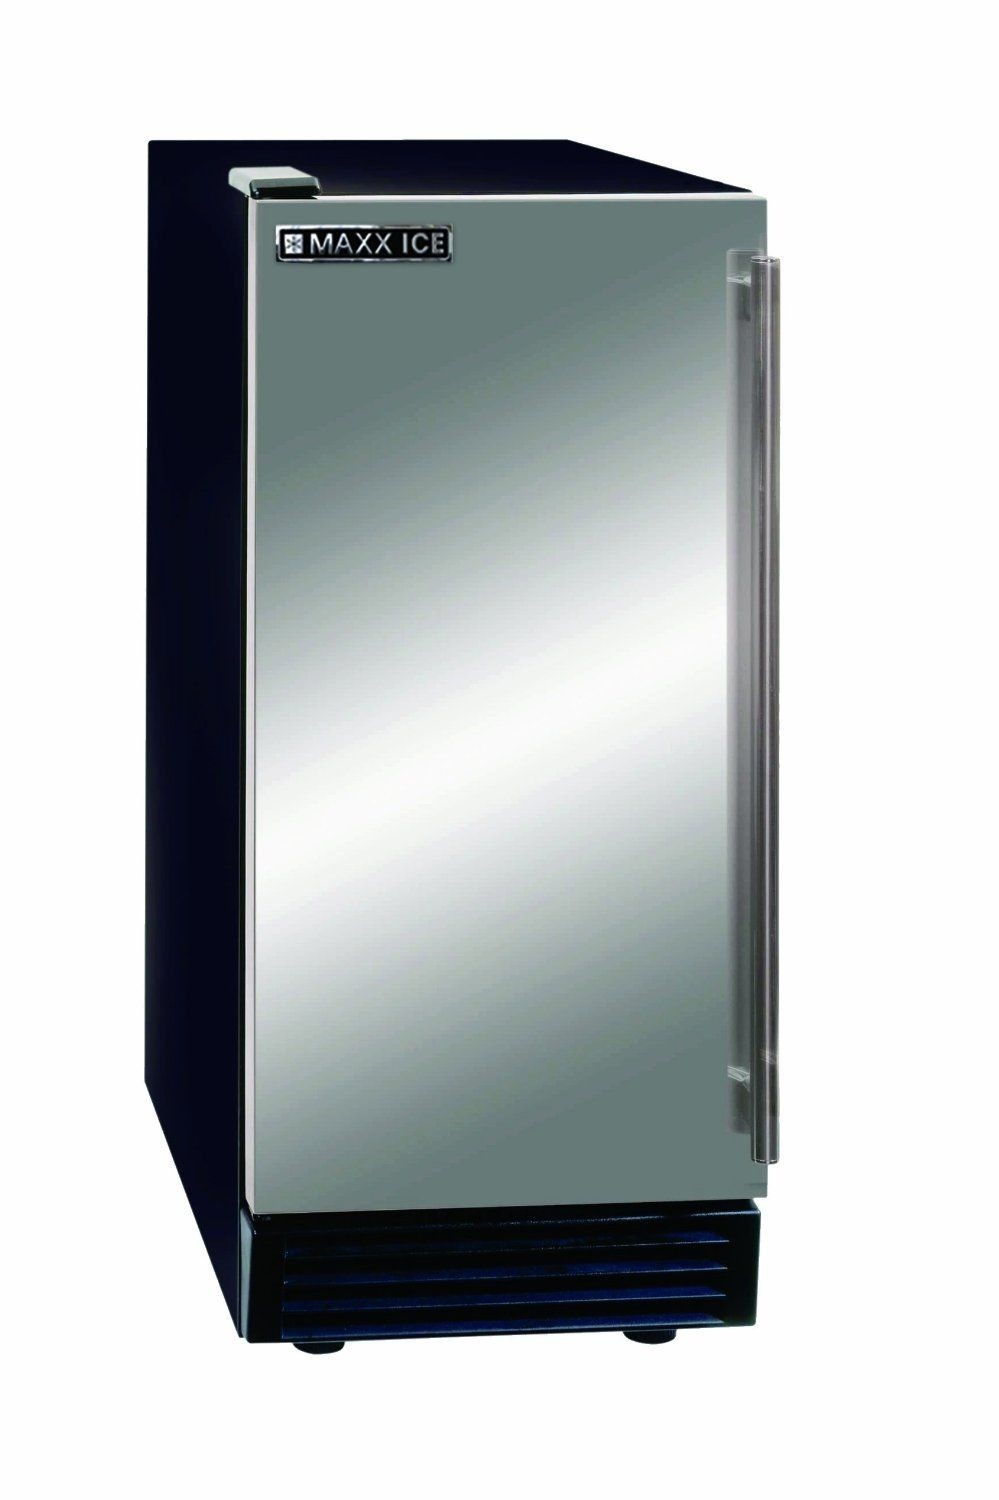 Maxx Ice MIM50 50 Lb.Self-Contained Ice Maker with Bin